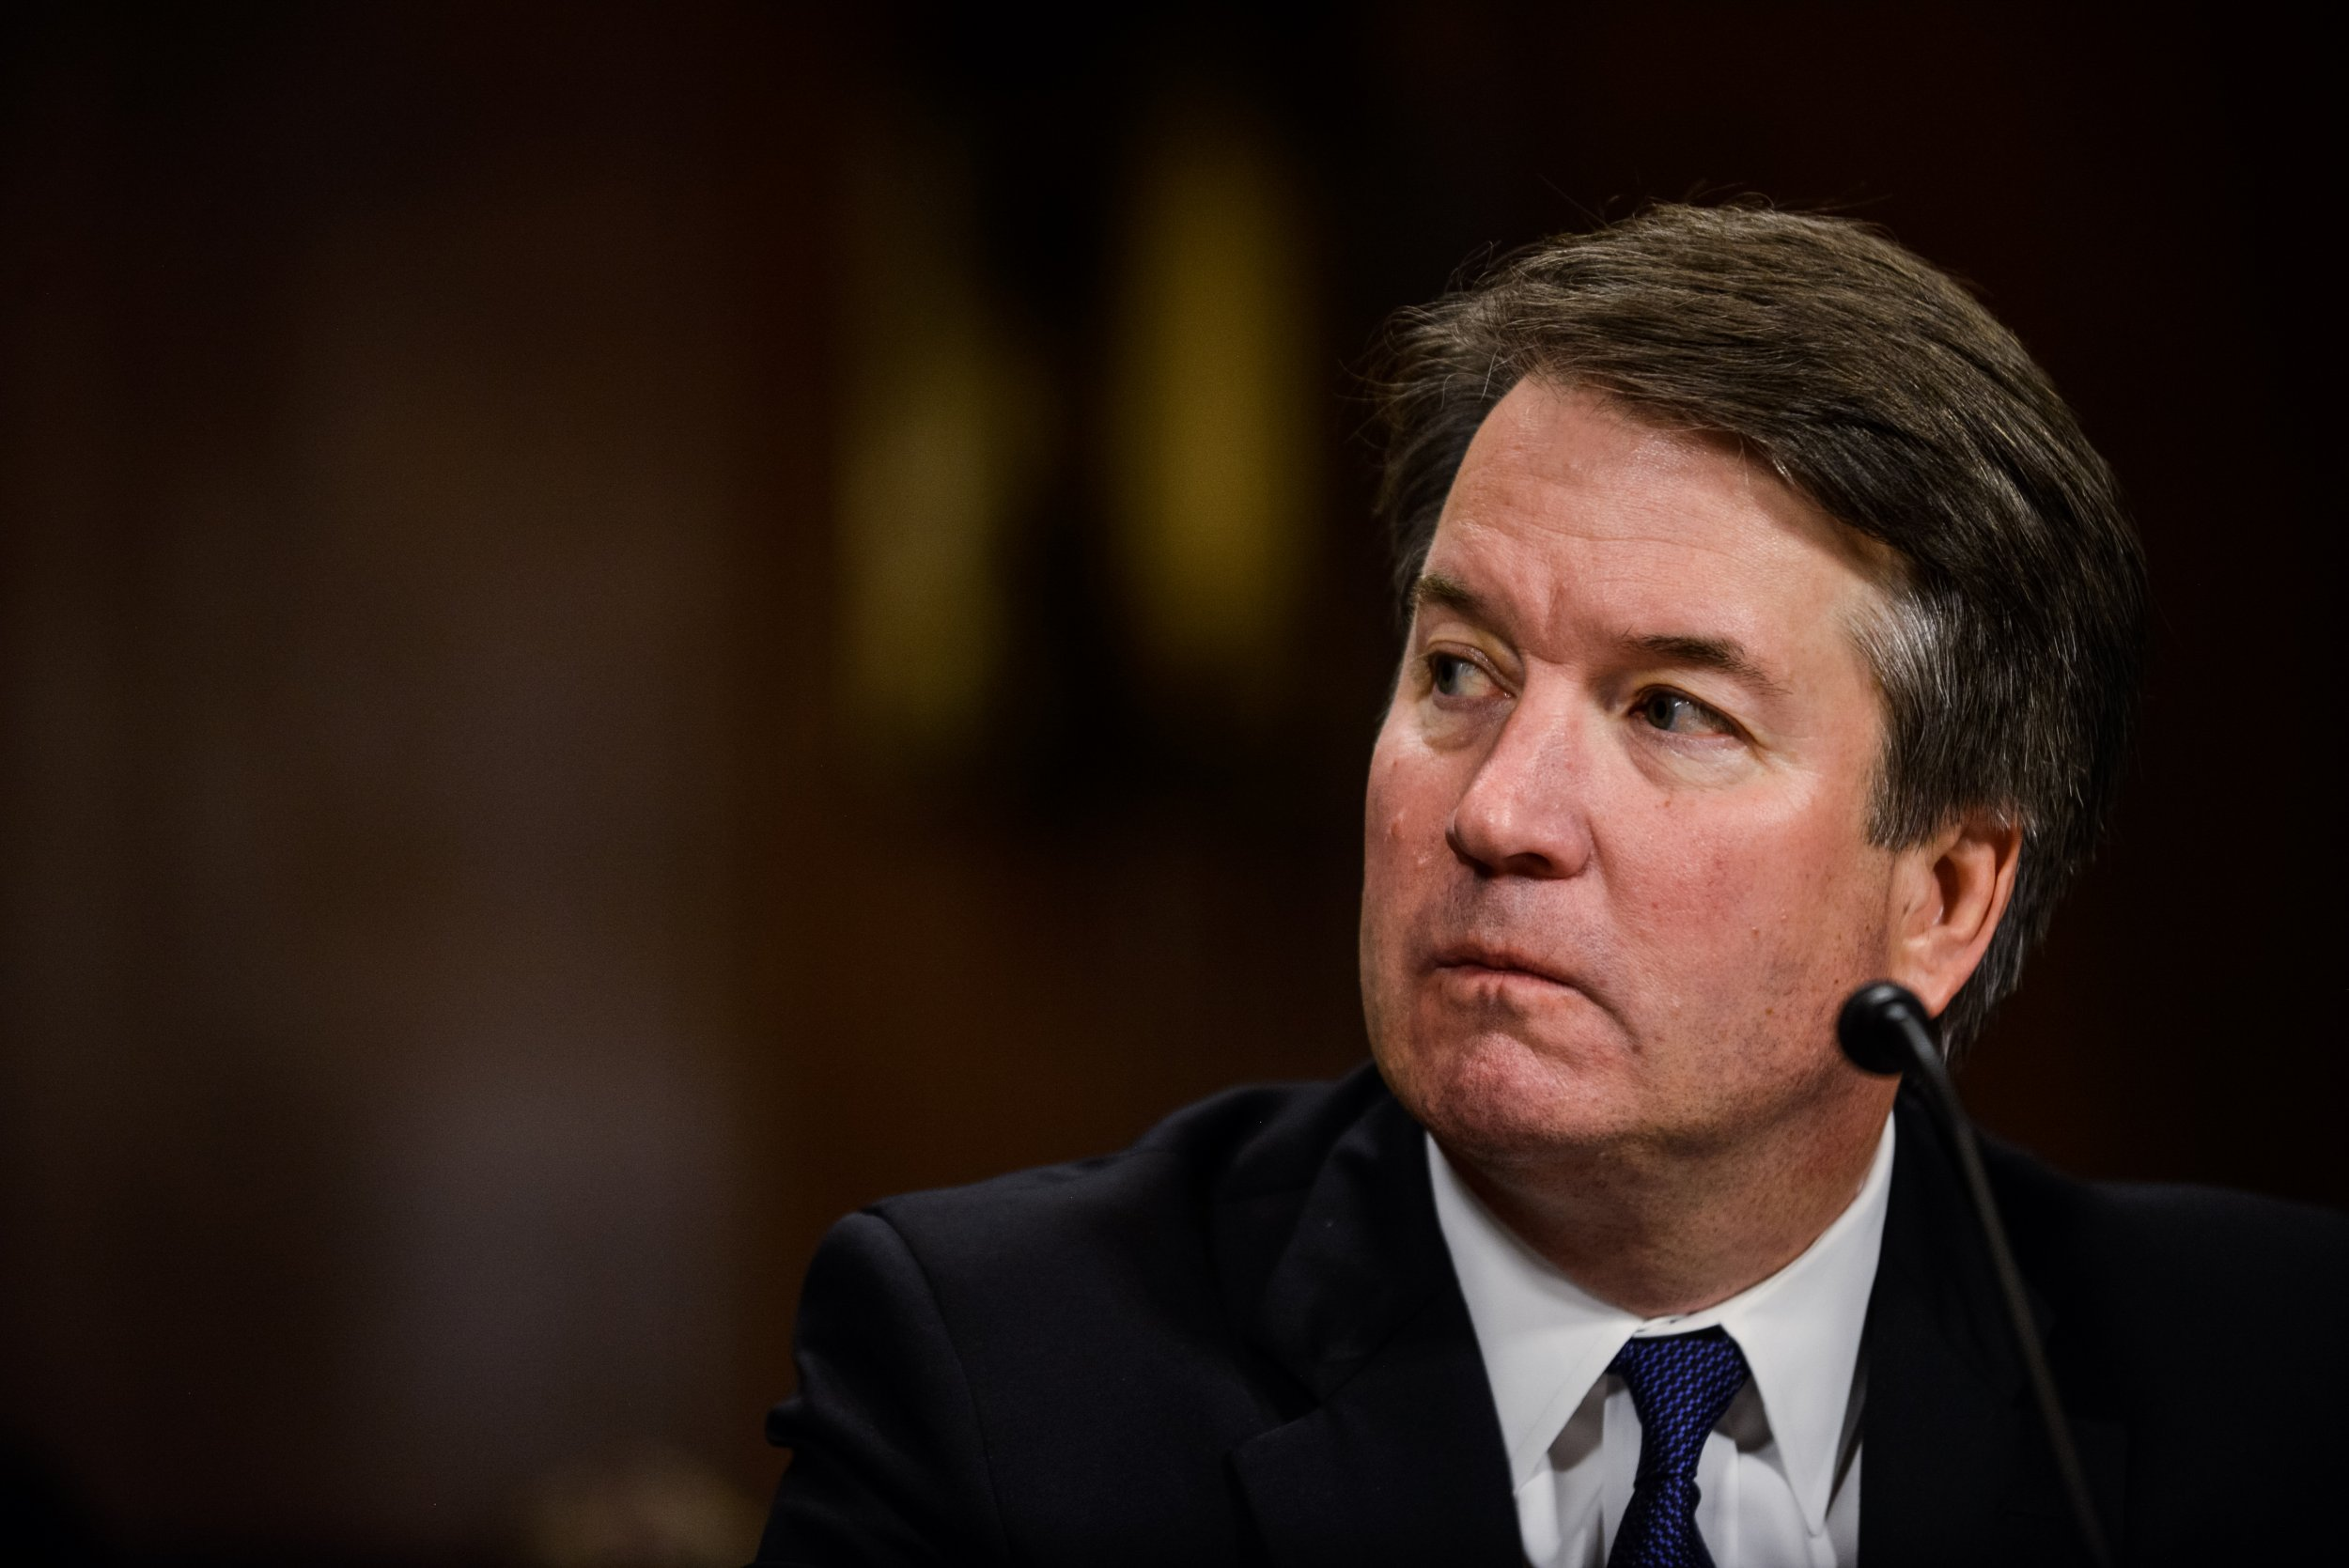 Brett Kavanaugh Investigation: Here are the Witnesses the FBI Interviewed and Those They Didn't